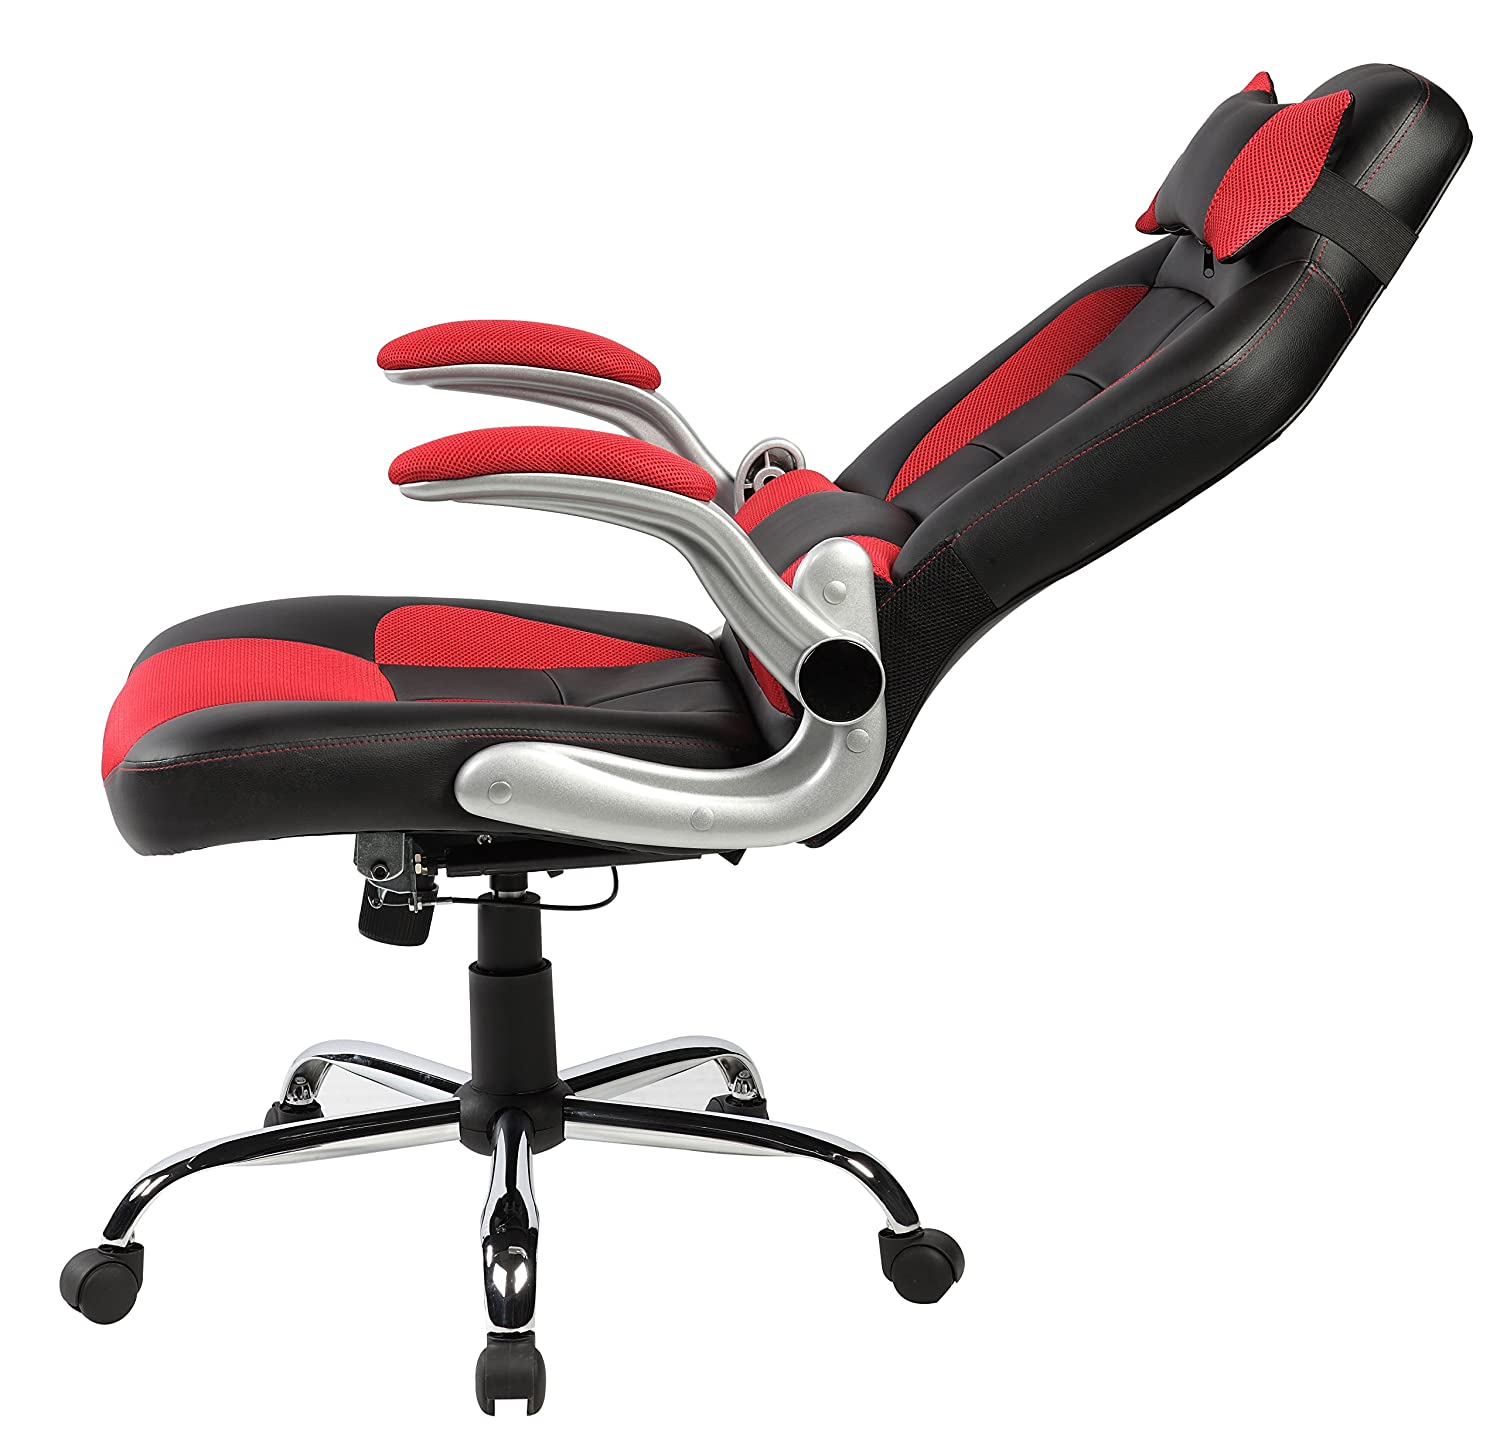 Amazon.com Merax High-back Ergonomic Pu Leather Racing Chair Executive Office Chair Swivel Chair Reclining Chair Home u0026 Kitchen  sc 1 st  Amazon.com & Amazon.com: Merax High-back Ergonomic Pu Leather Racing Chair ... islam-shia.org